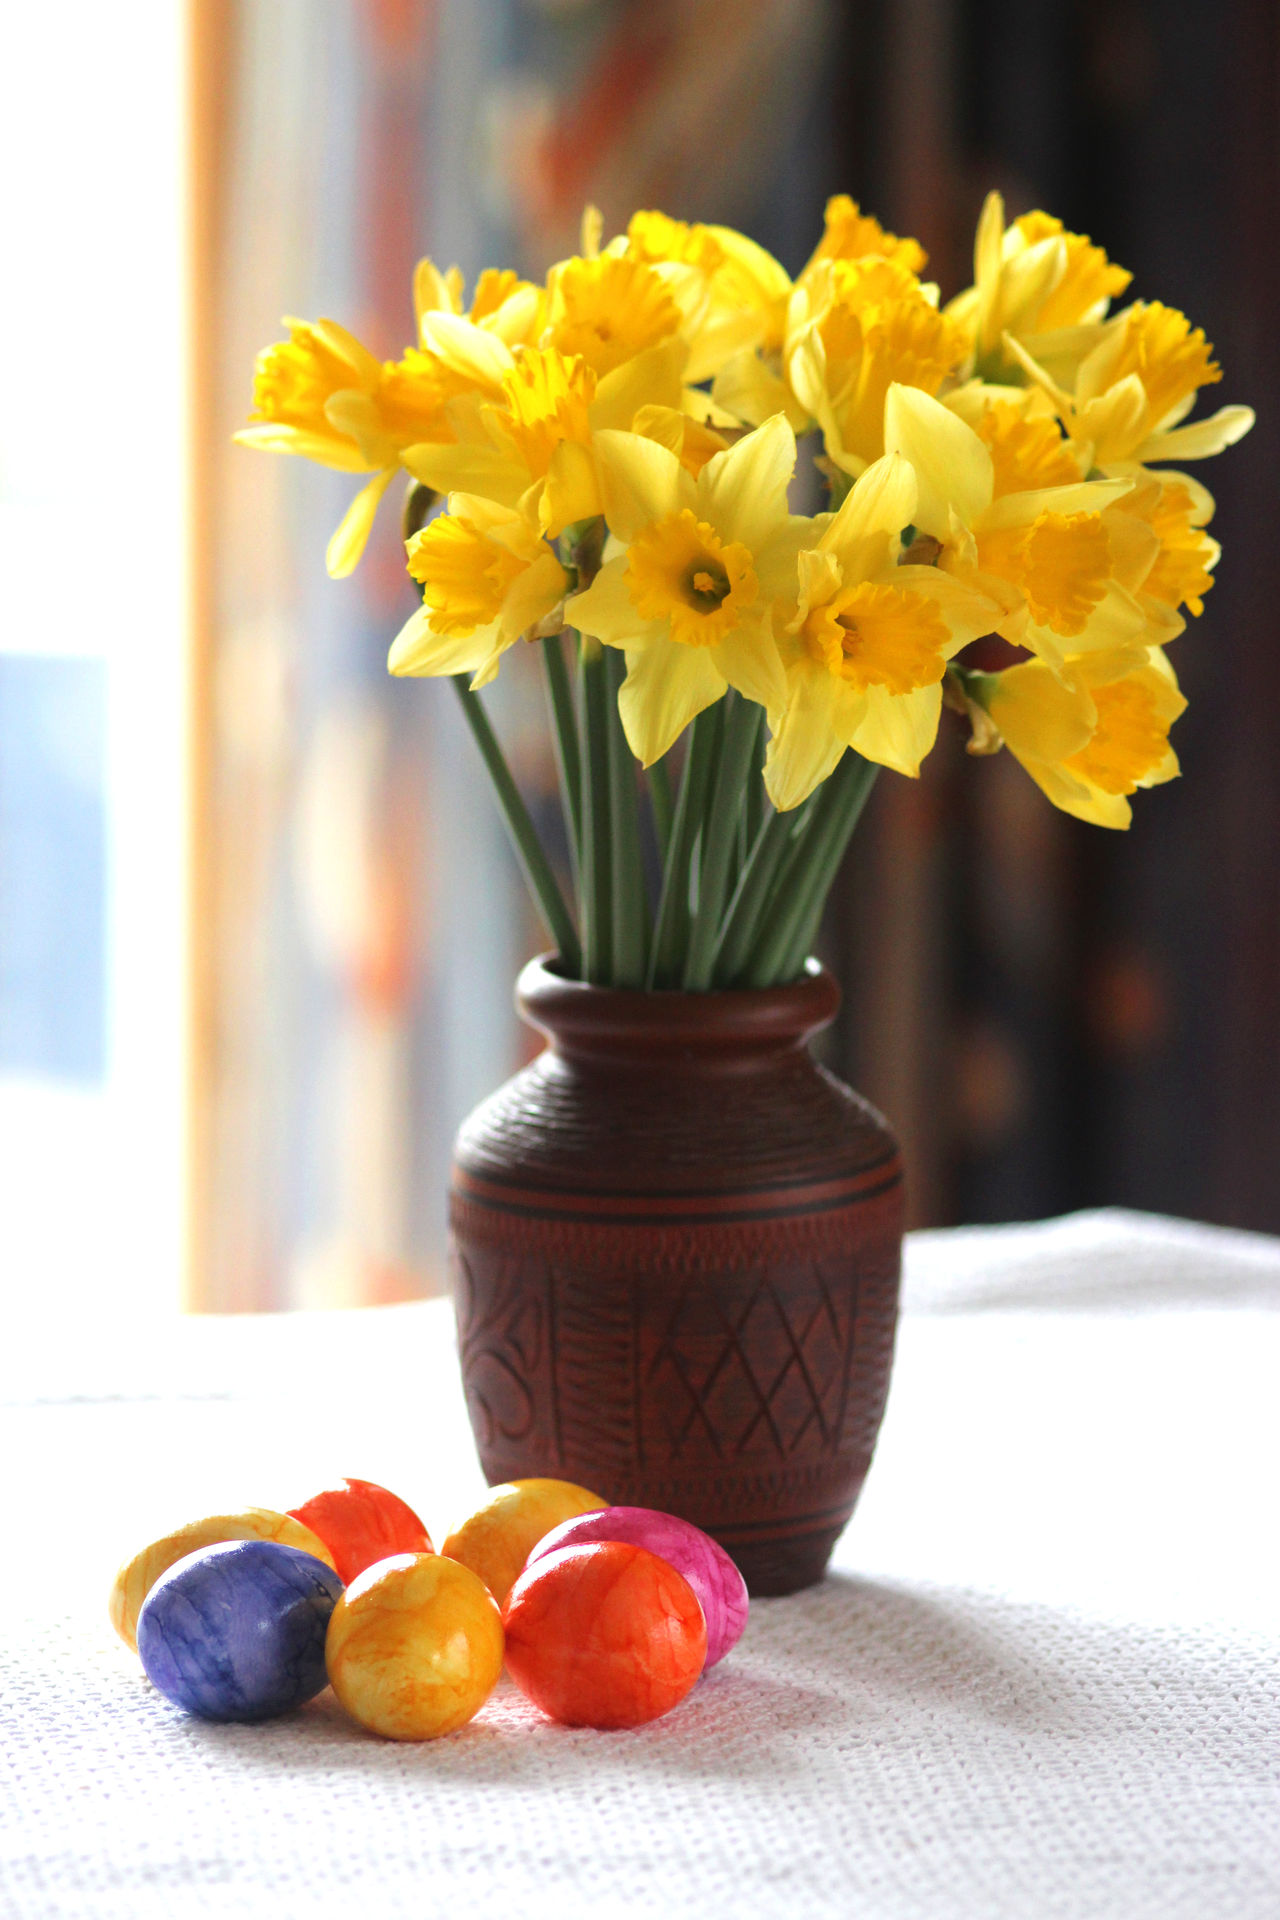 Happy Easter! Daffodils and easter eggs Flower Yellow Nature Fragility Vase Flower Head Freshness Table Beauty In Nature Close-up Flower Arrangement No People Indoors  Bouquet Day Spring Flowers Springtime Celebration Decoration Daffodils Colored Eggs Colorful Colors Easter Ready Easter Eggs